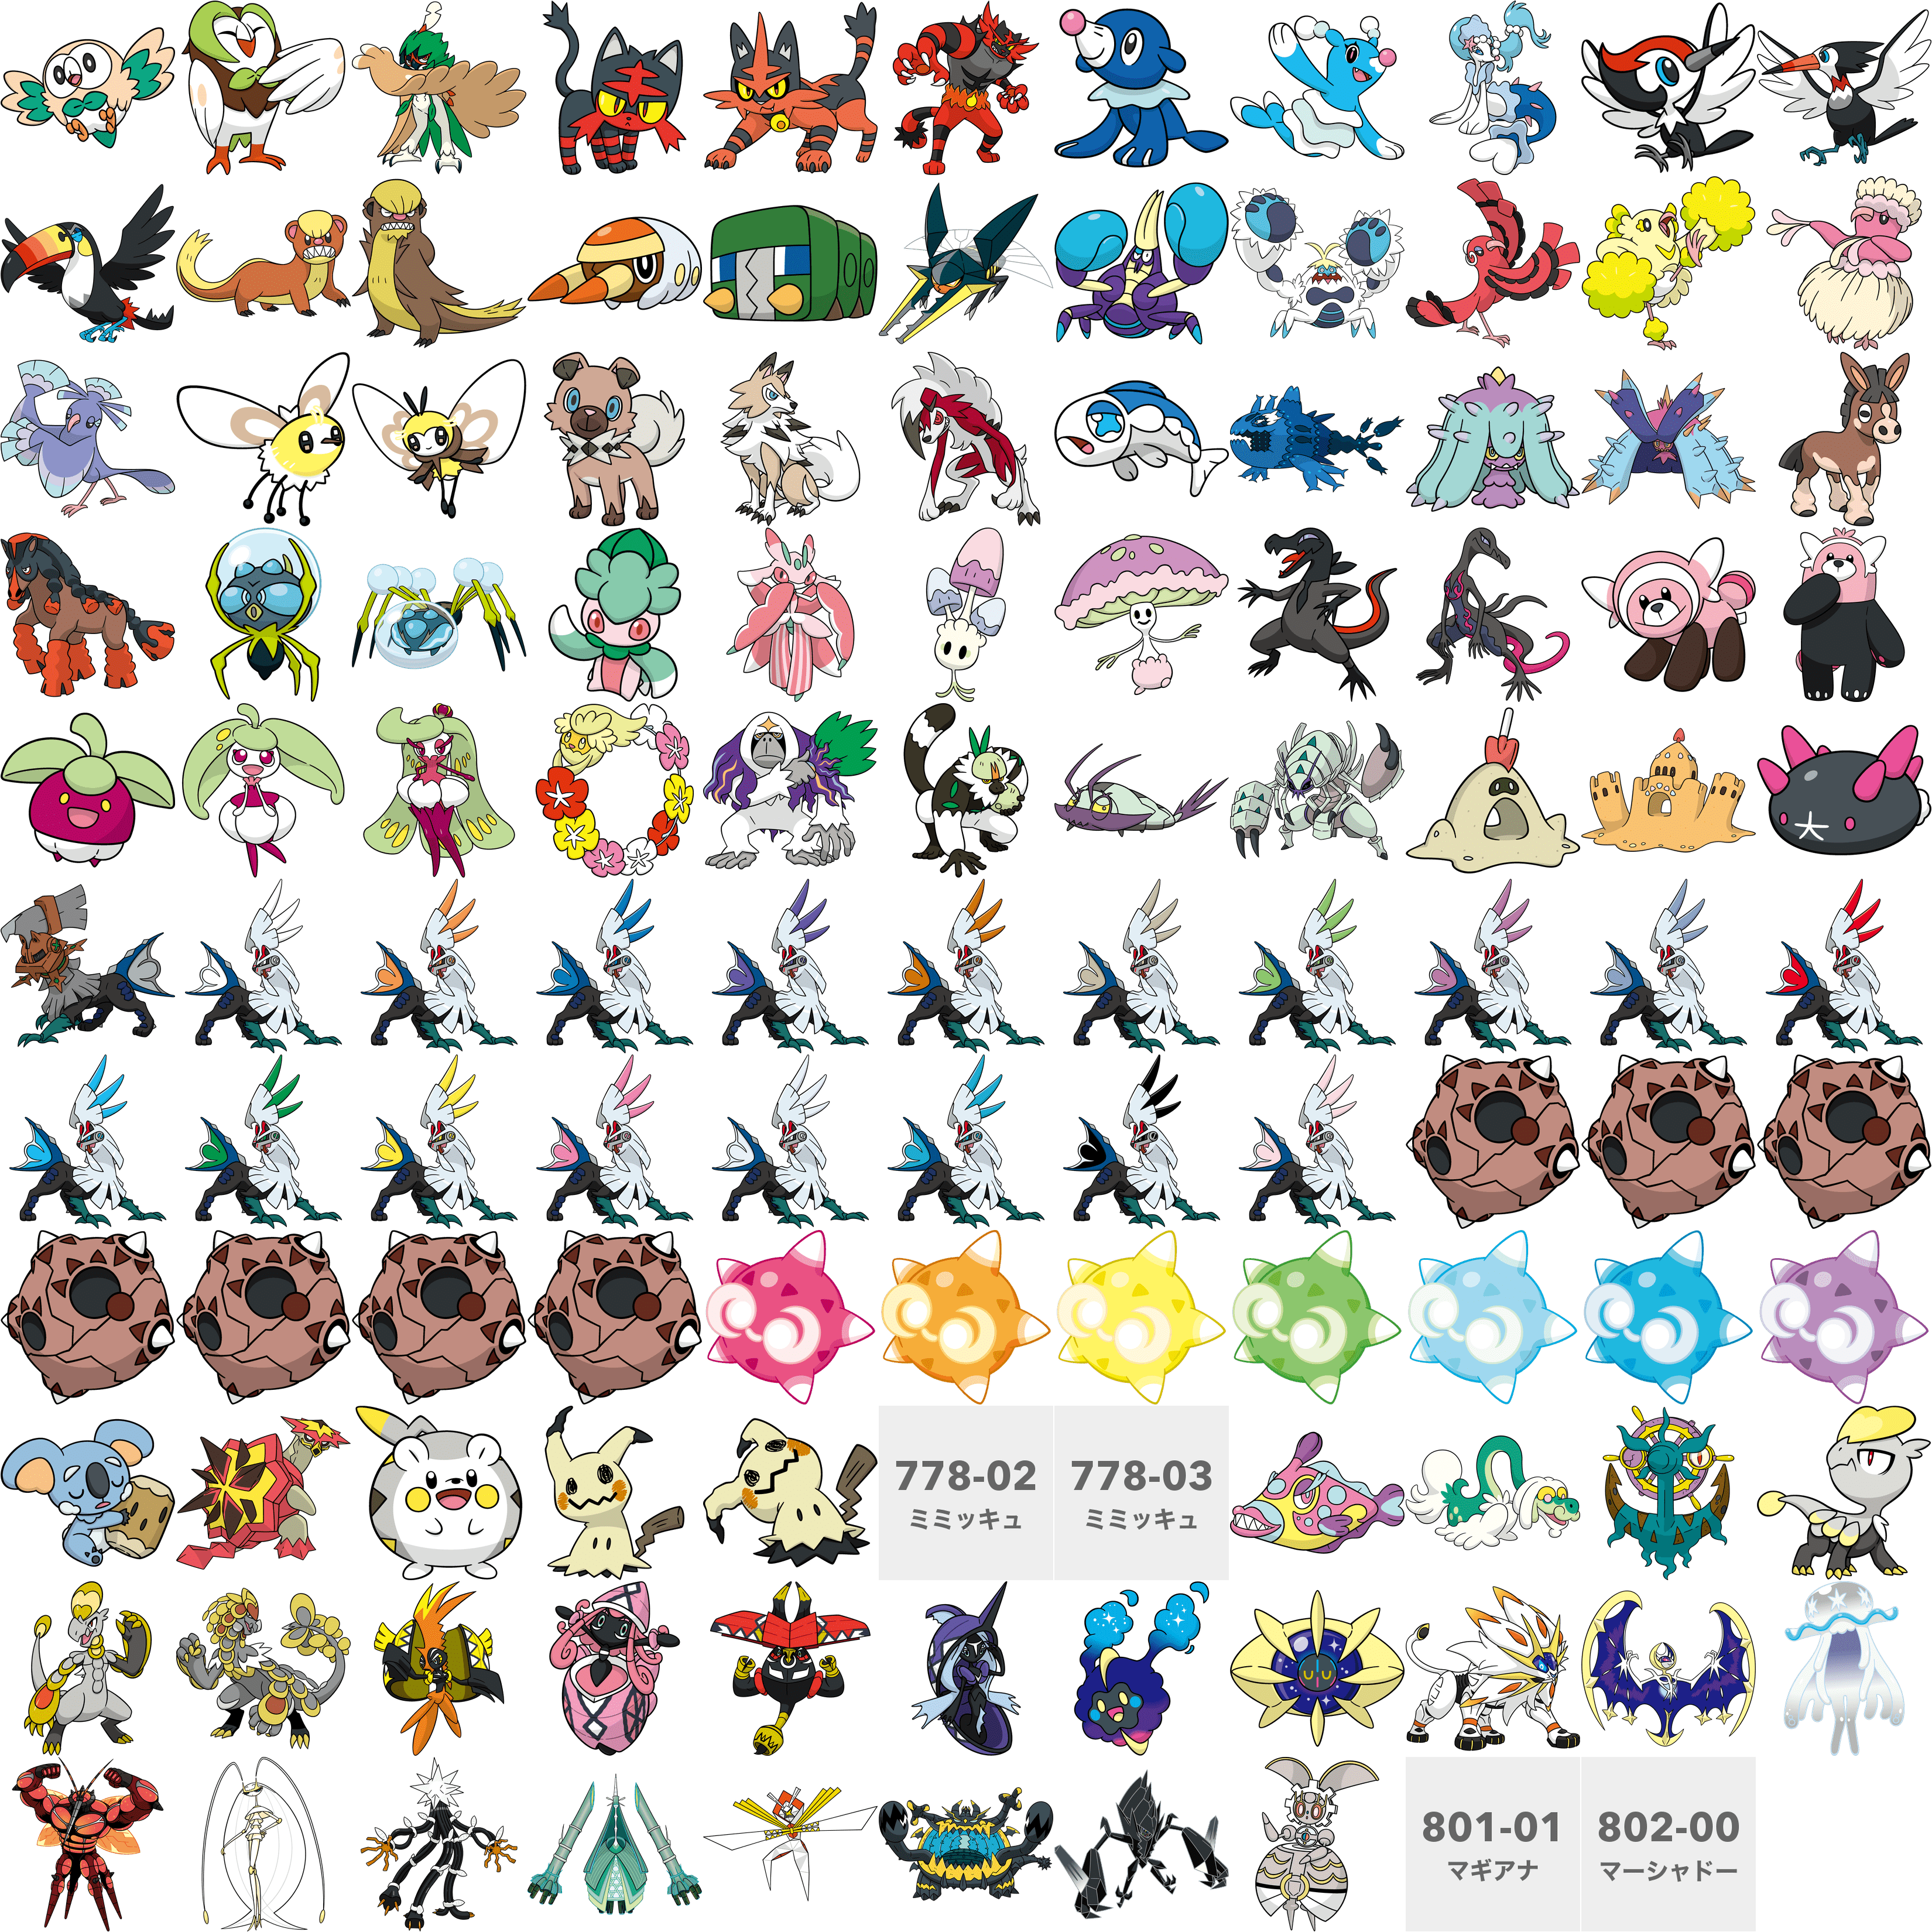 pgl art for all new pokemon pokémon sun and moon know your meme